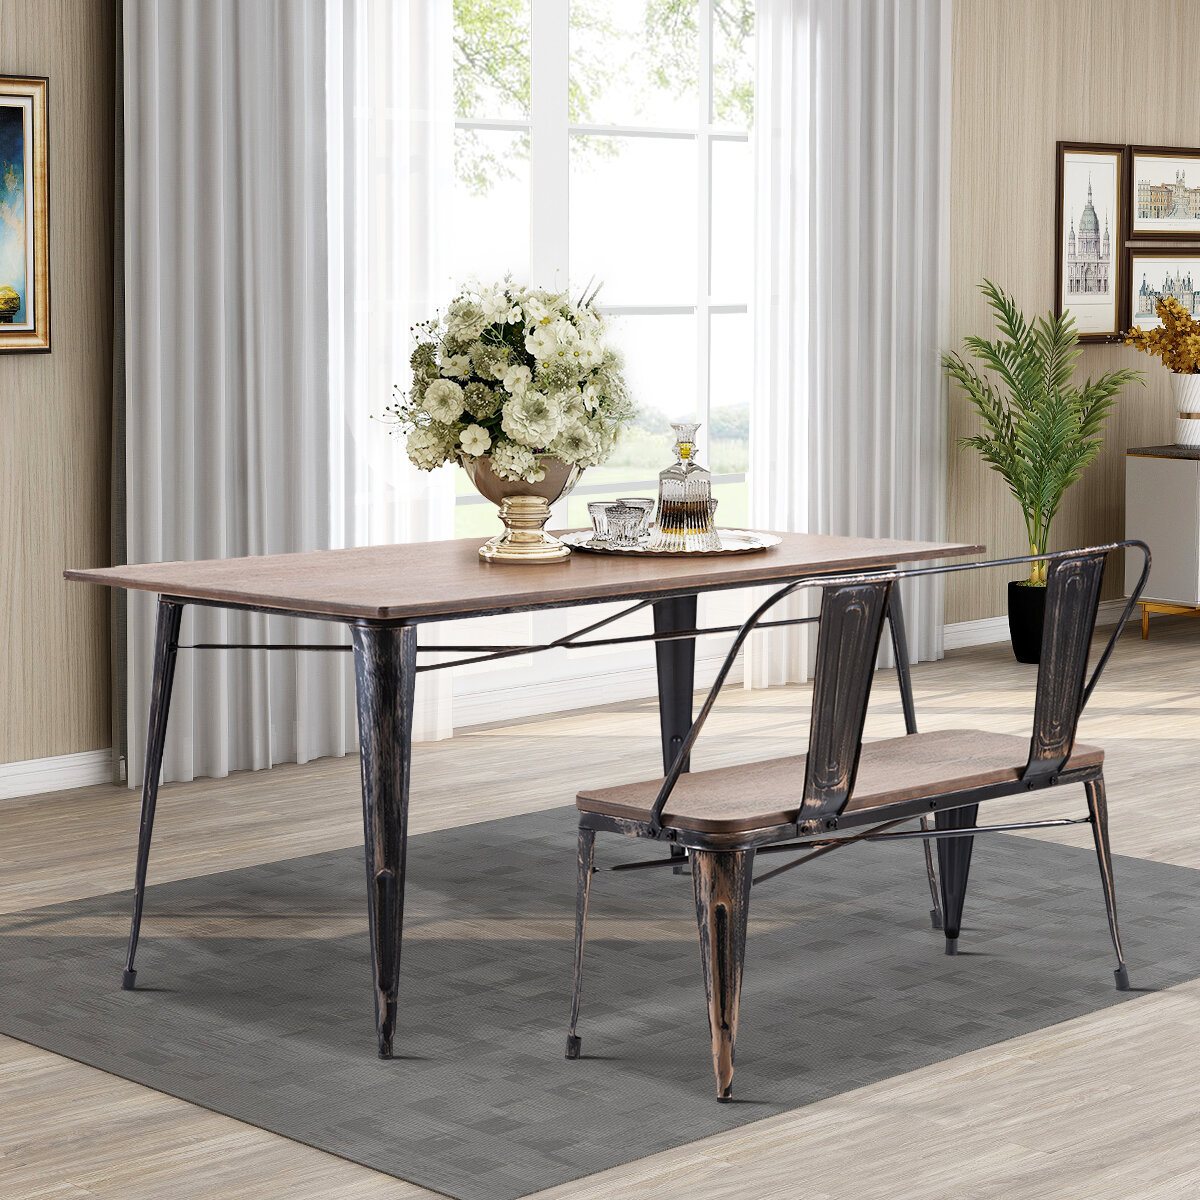 Williston Forge Antique Style Dining Set Rustic Vintage Style Rectangular Dining Table And Bench With Metal Backrest Legs Wooden Seat Panel Distressed Black Wayfair Ca